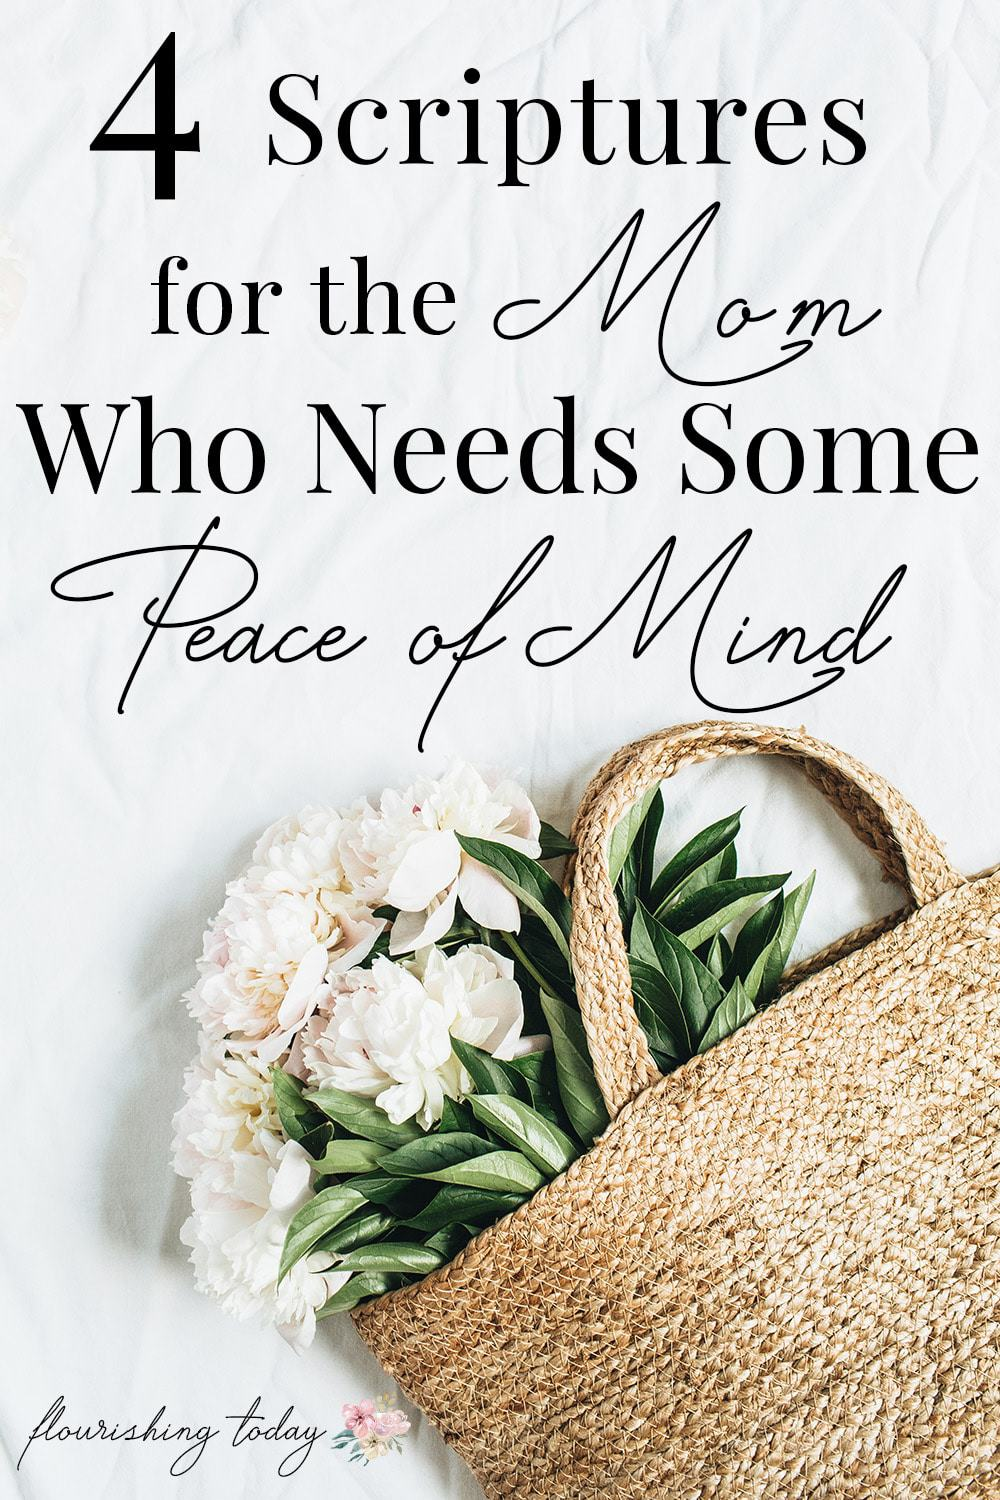 4 scriptures for the mom who needs some peace of mind flourishing